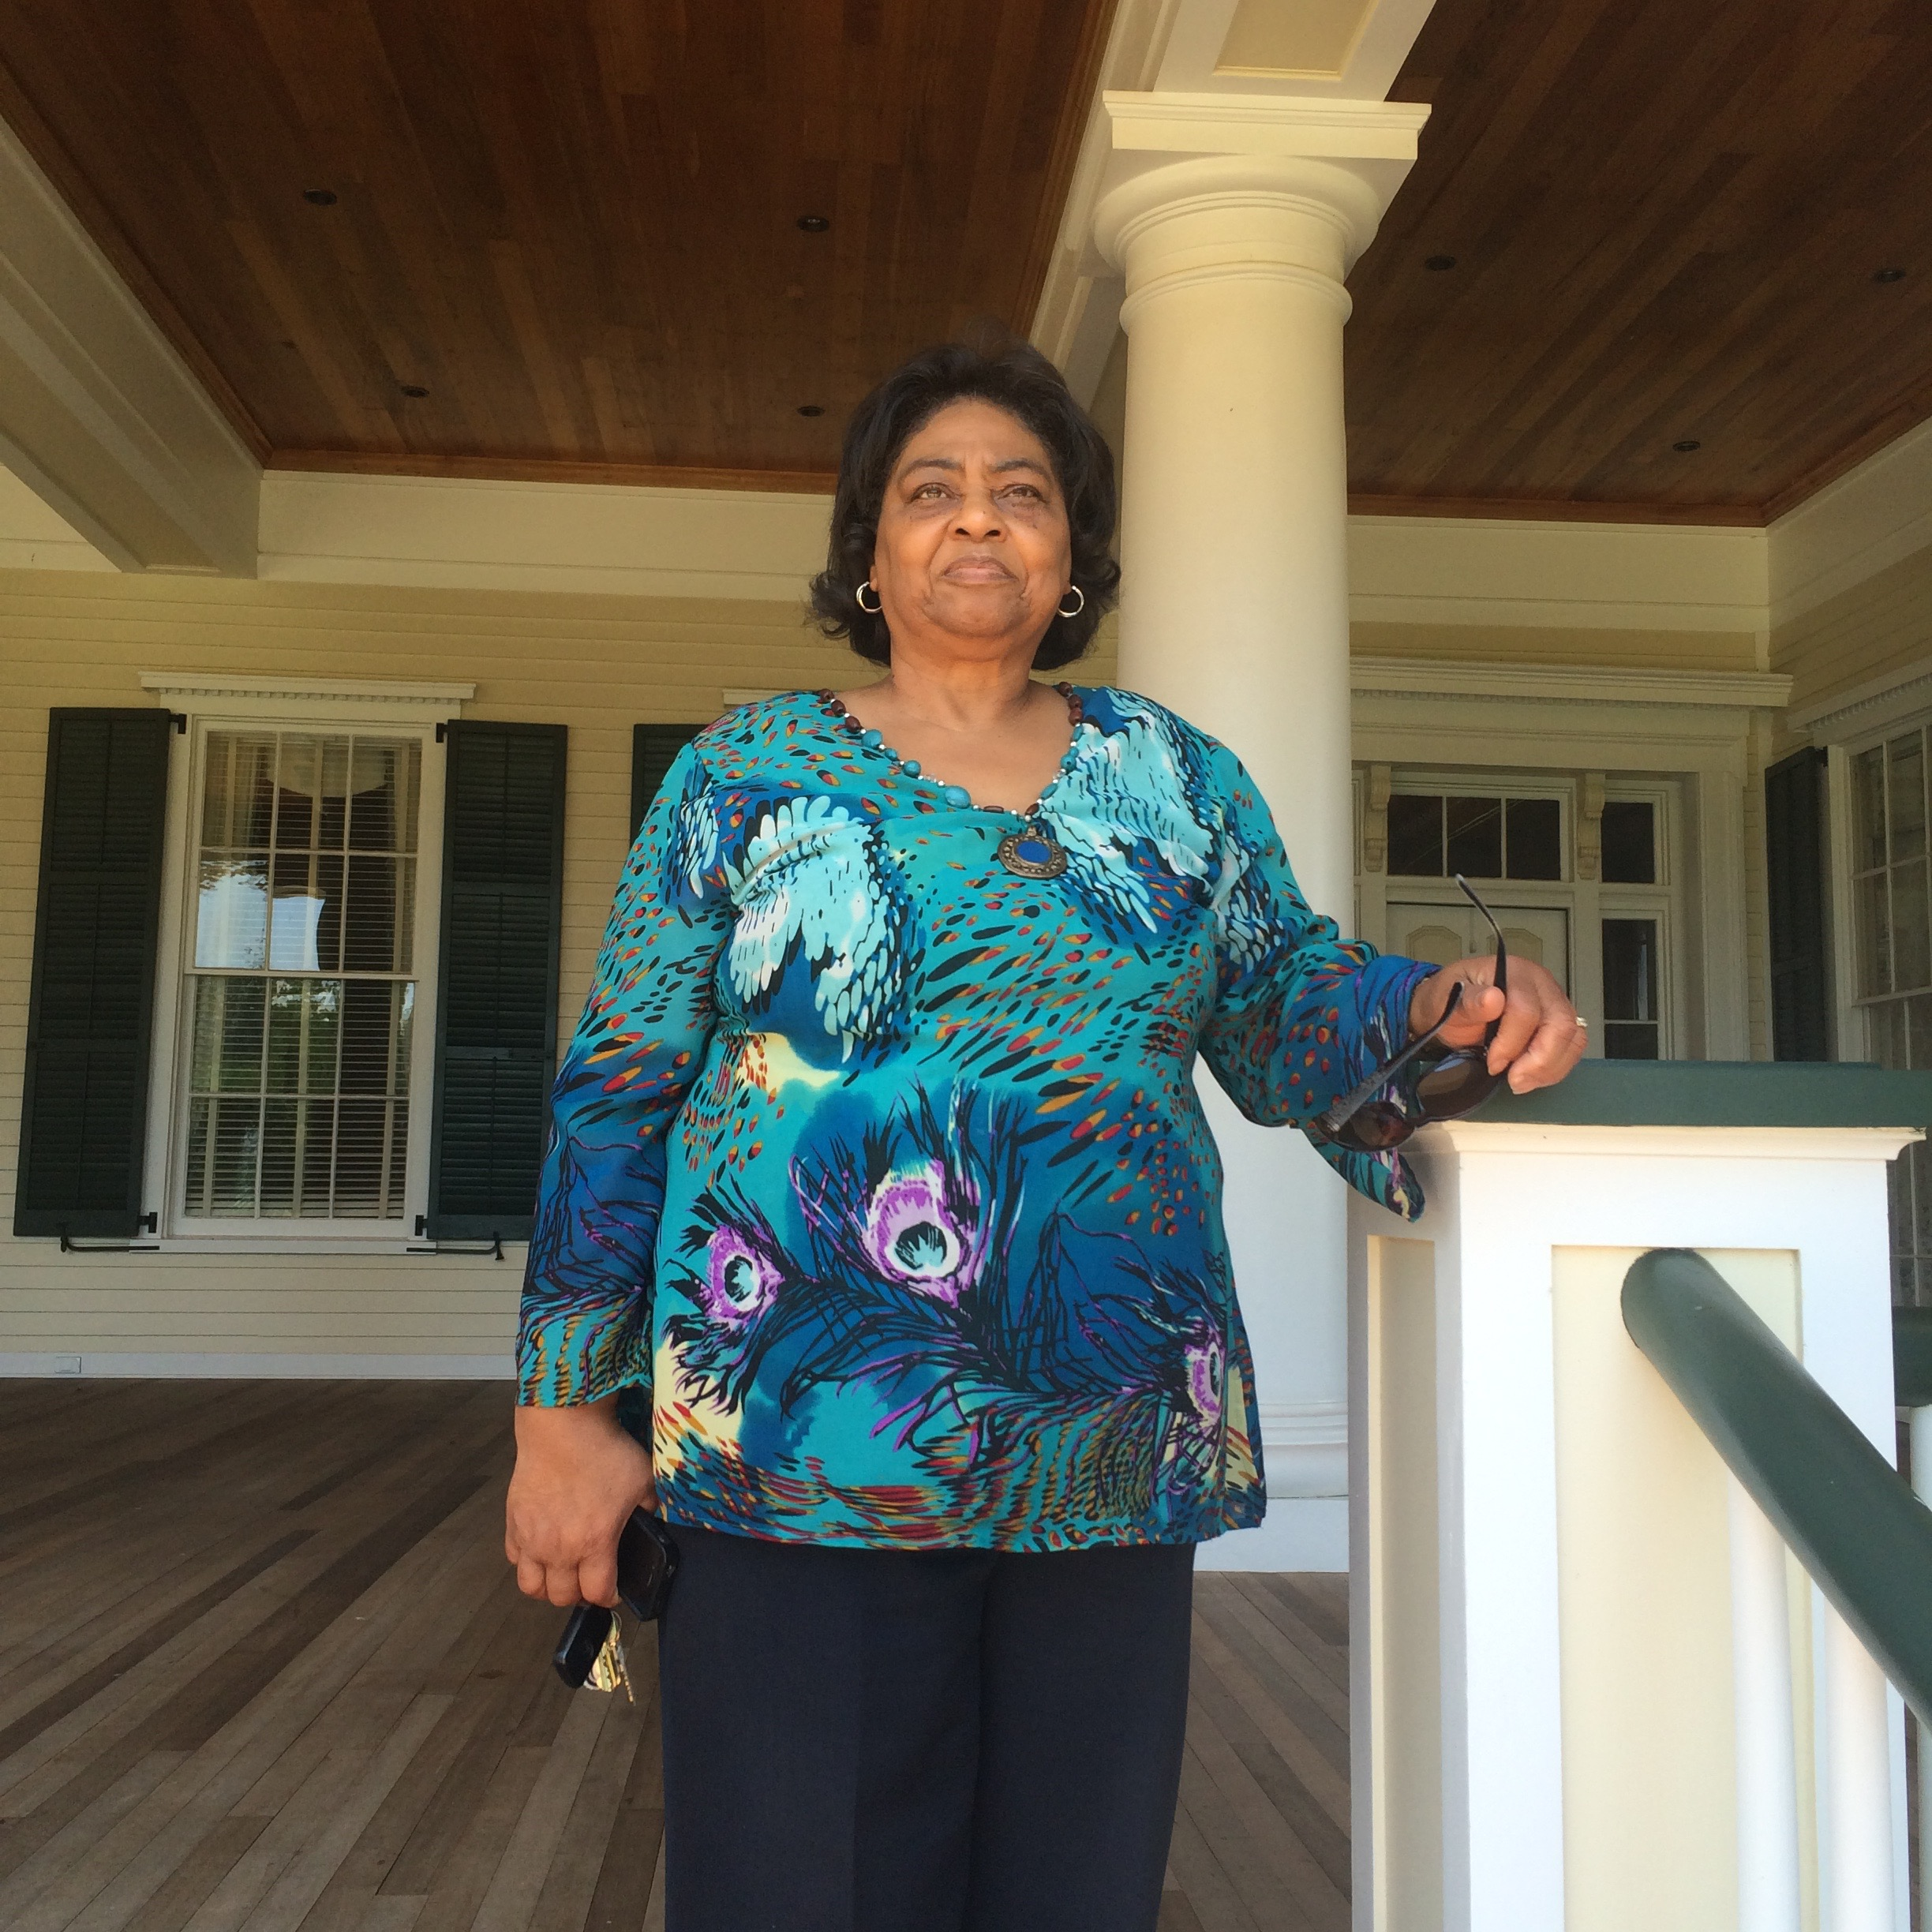 Caption: Shirley Sherrod on the porch of the antebellum mansion at Resora Plantation , Credit: Photo by Tina Antolini.